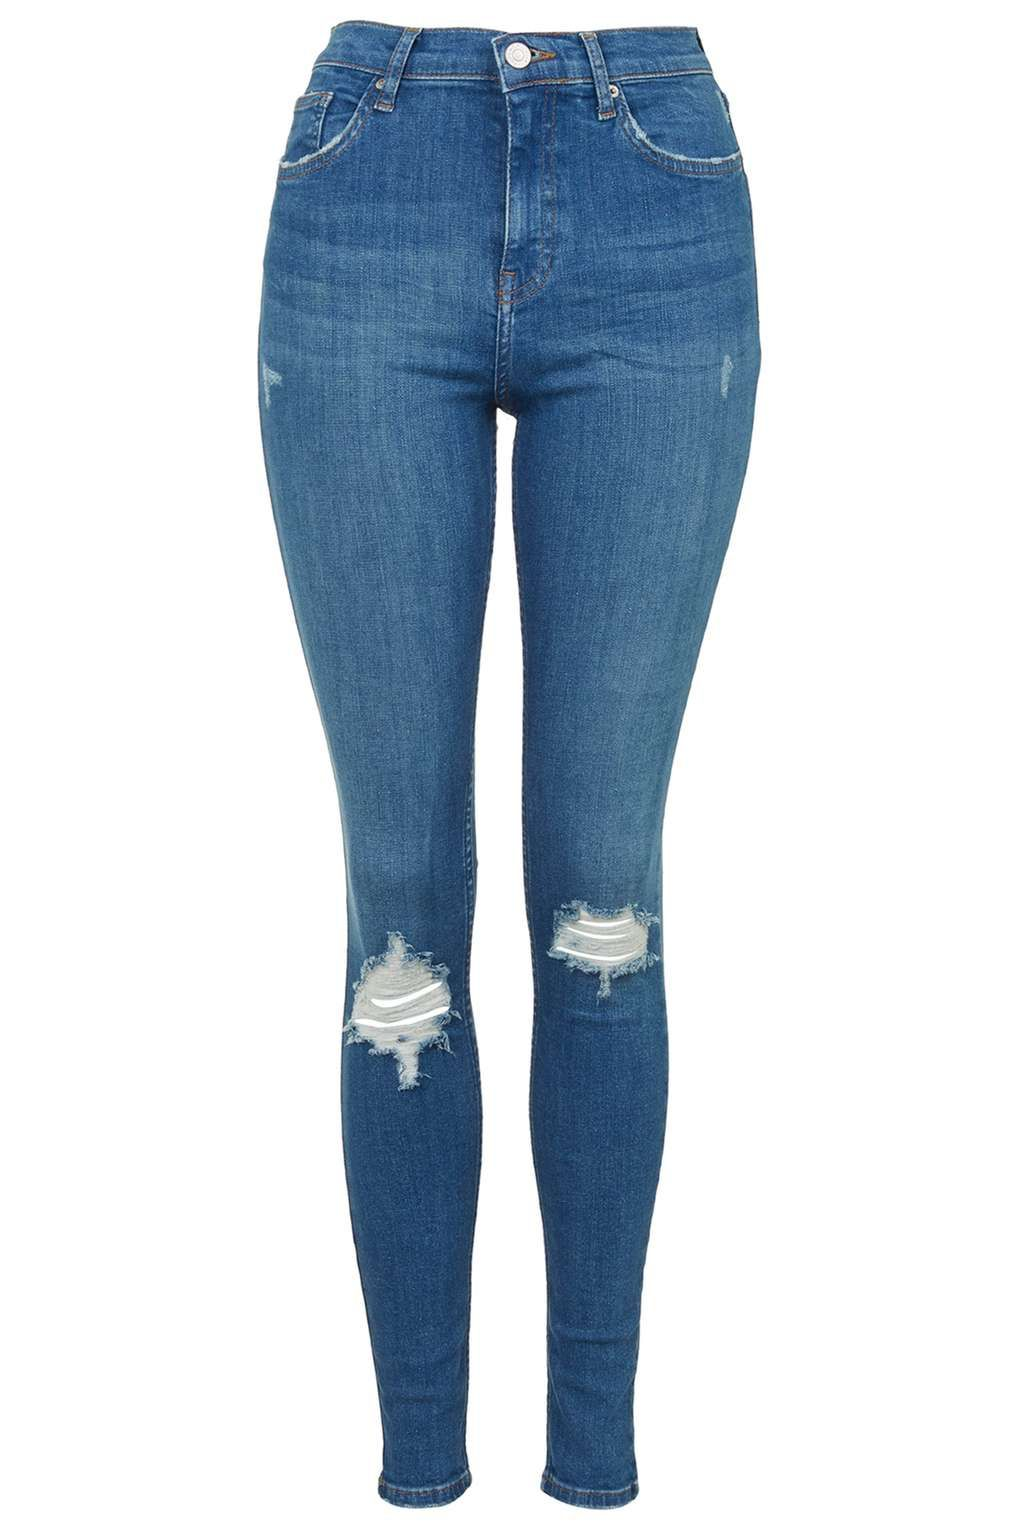 63fcb5ae1c84 MOTO Authentic Ripped Jamie Jeans in 2019 | Fashion | Jeans, Riped ...